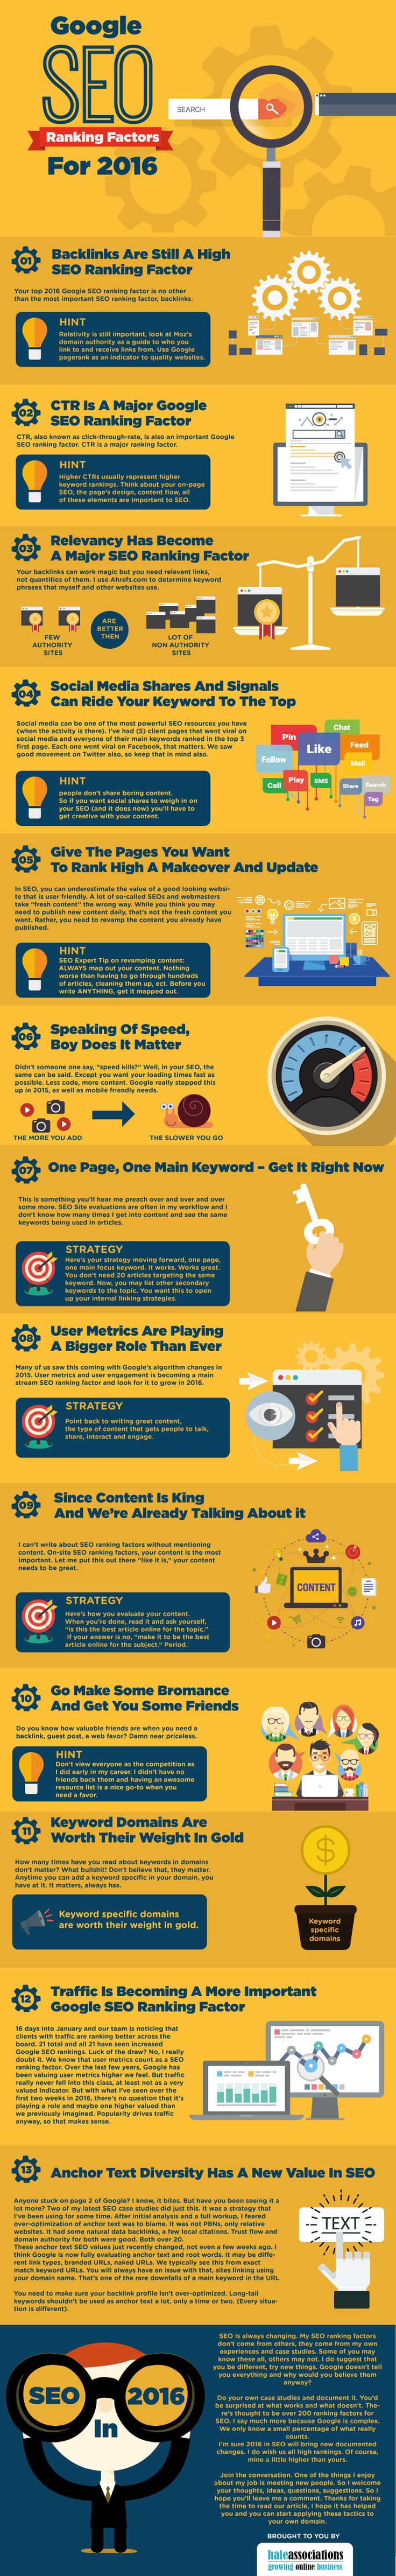 Important Google ranking factors to use for your website to rank high on Google search results.